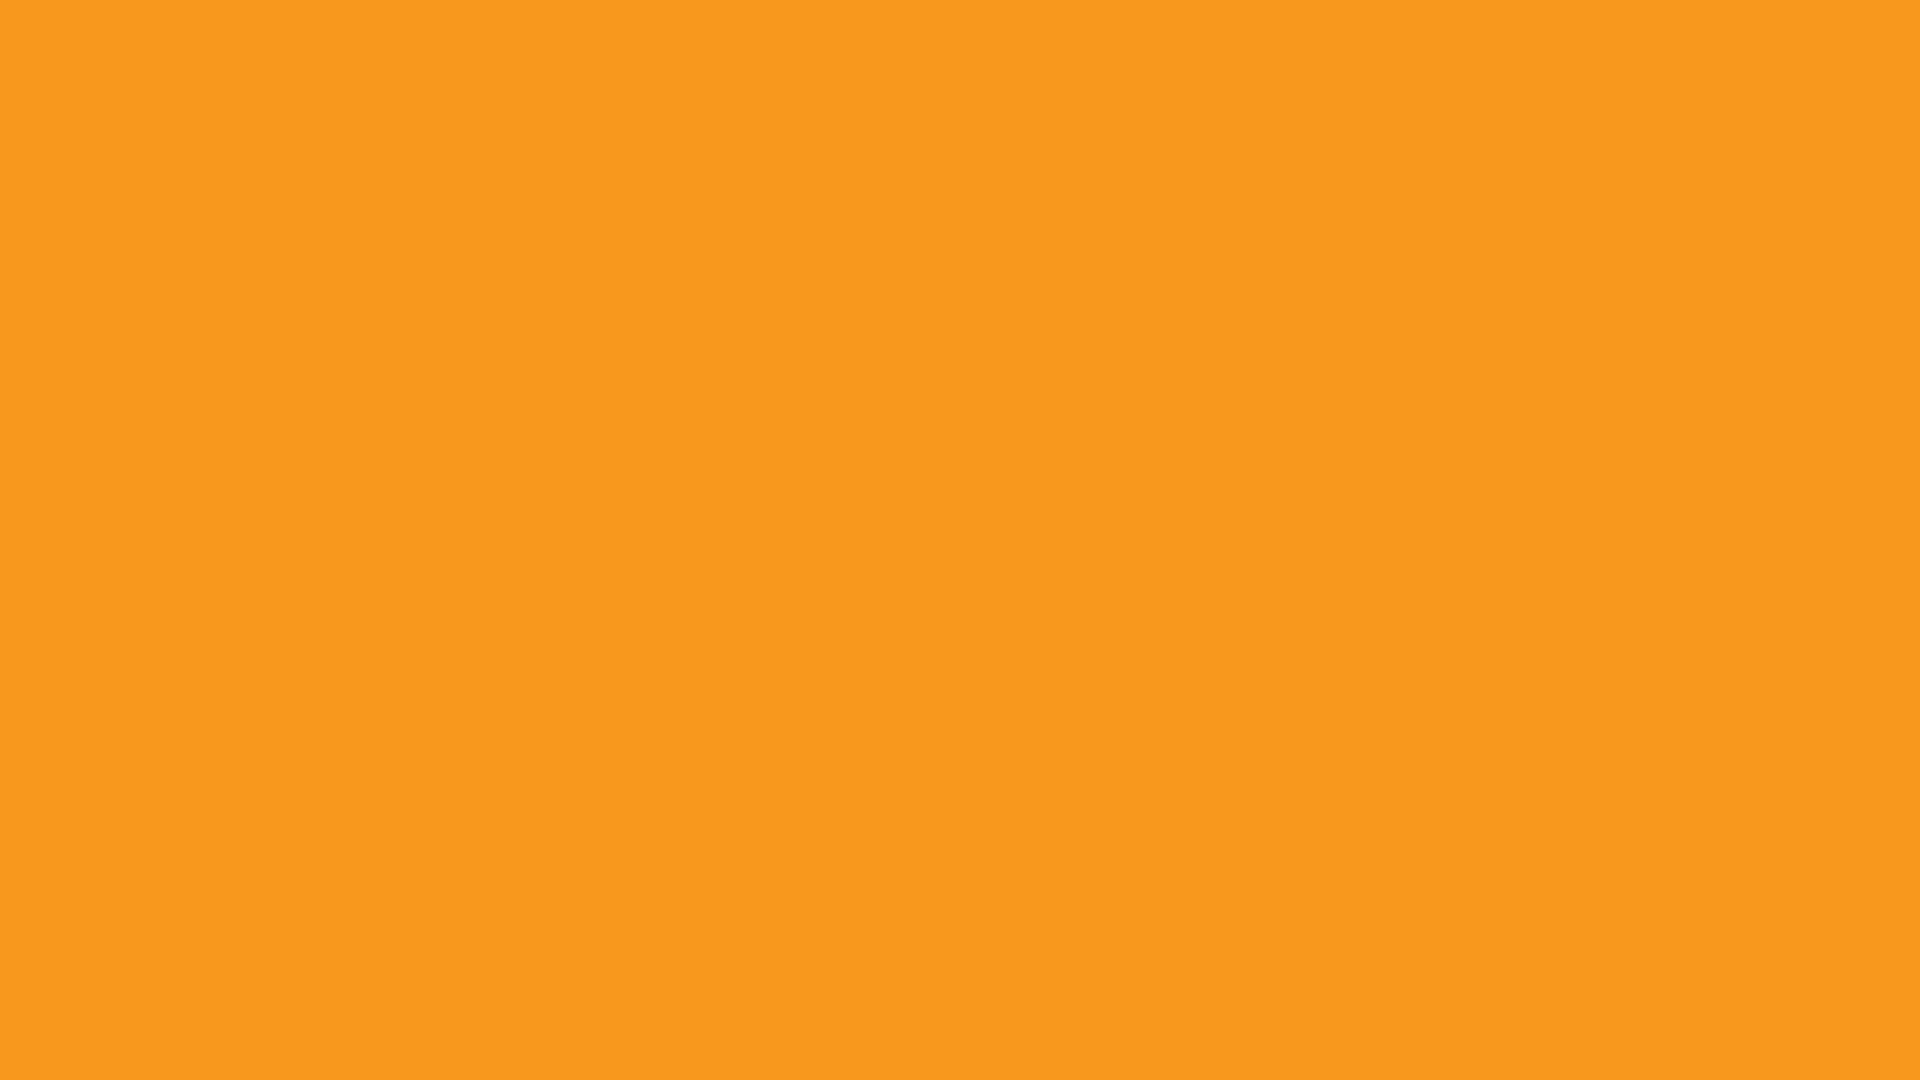 plain_vmware_orange1